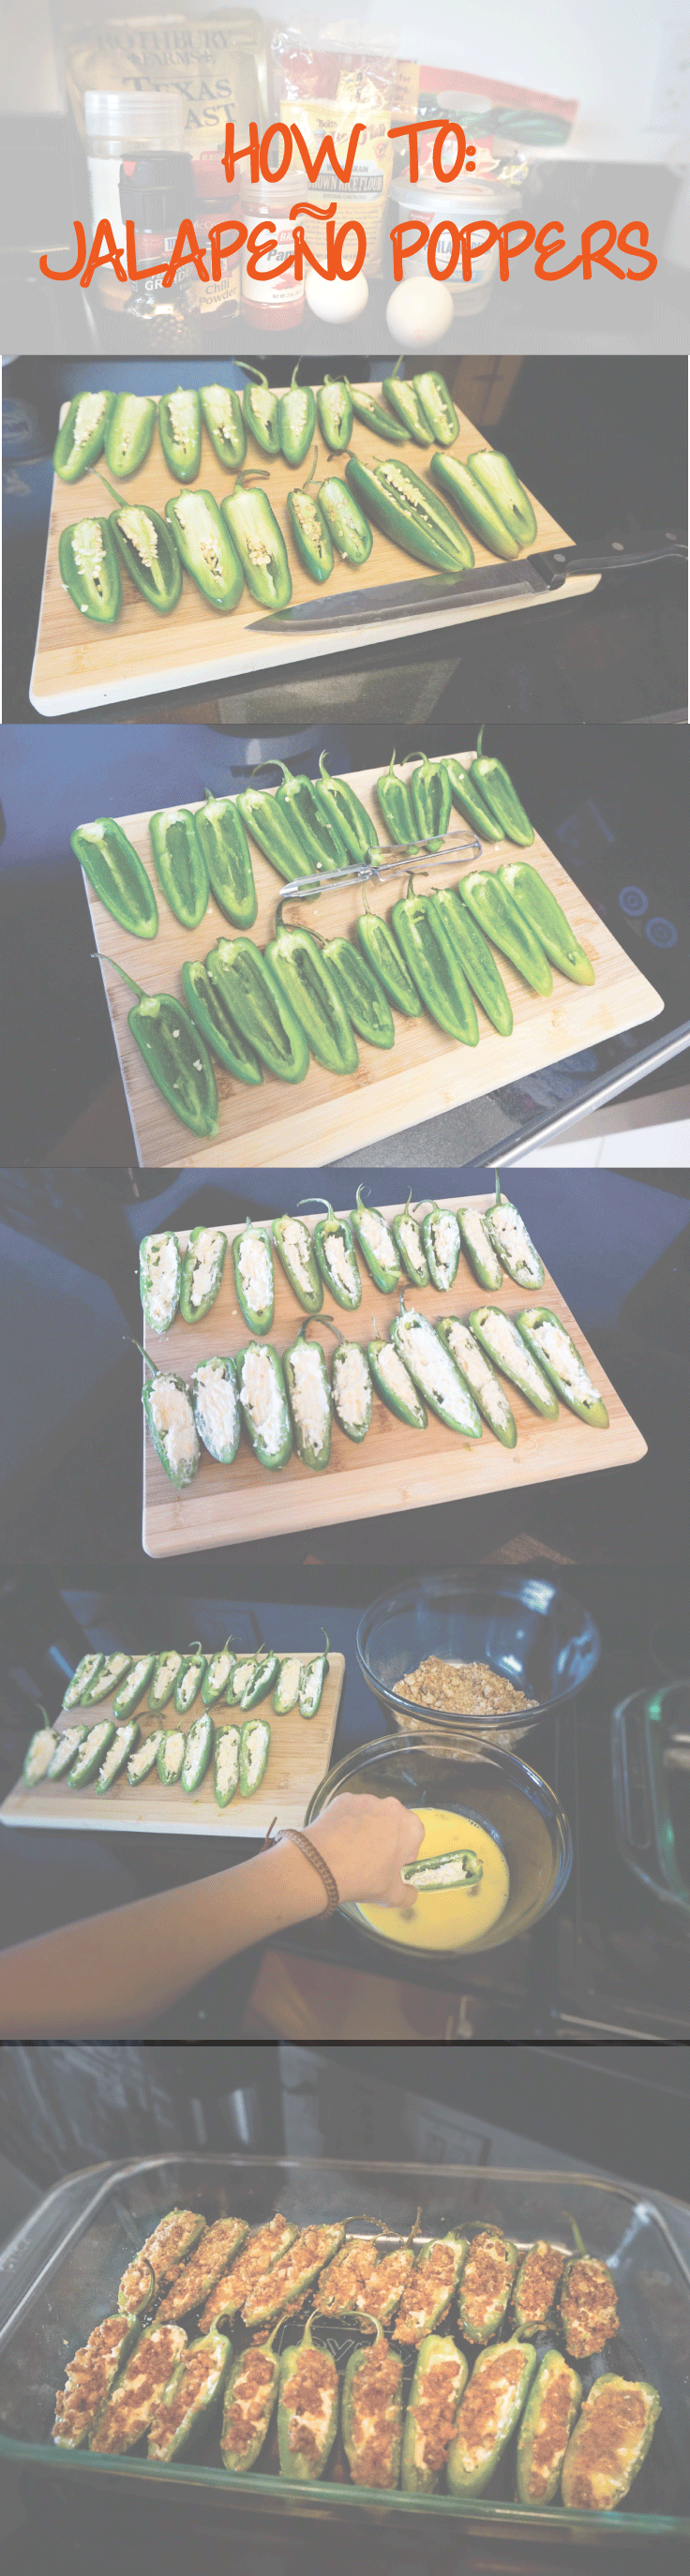 How To: Jalapeño Poppers a HEALTHIER version, not deep fat fried with fresh ingredients.  Great appetizer for entertaining!  instructions here: http://andivance.com/2015/02/04/how-to-jalapeno-poppers/